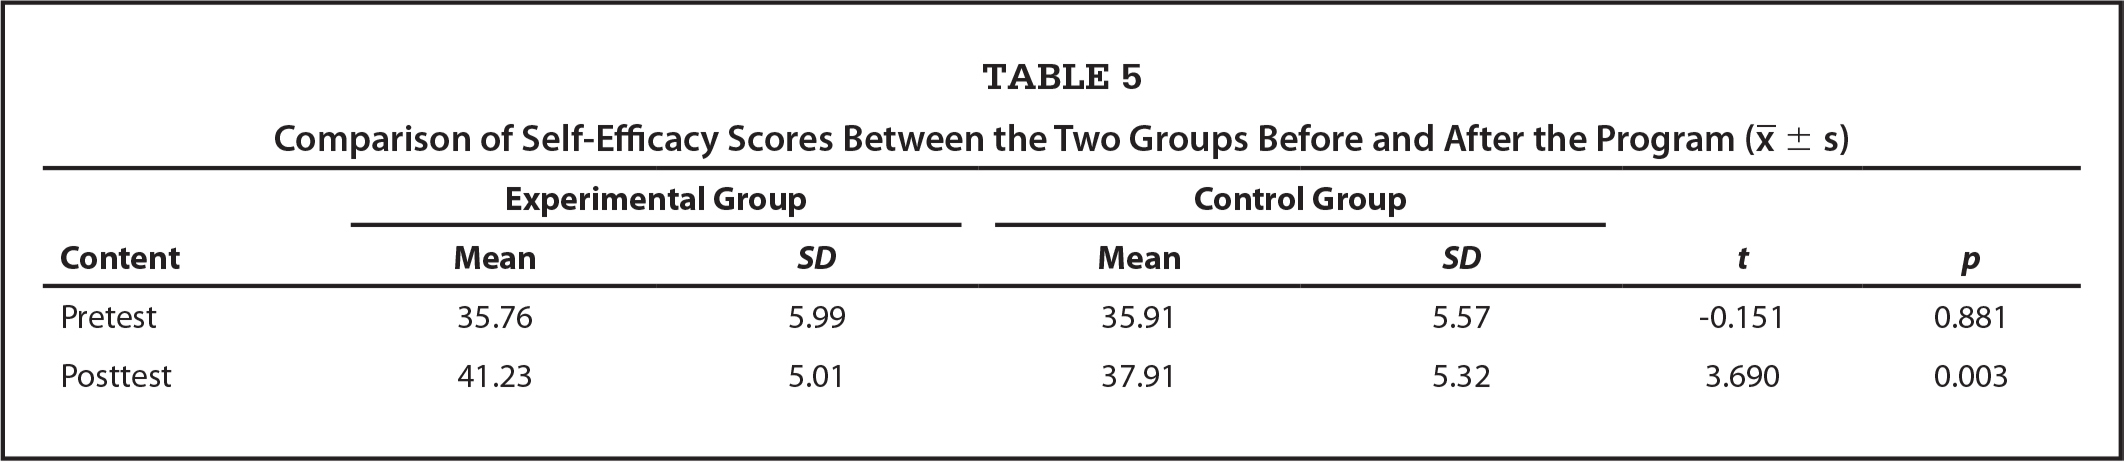 Comparison of Self-Efficacy Scores Between the Two Groups Before and After the Program (χ̄±s)